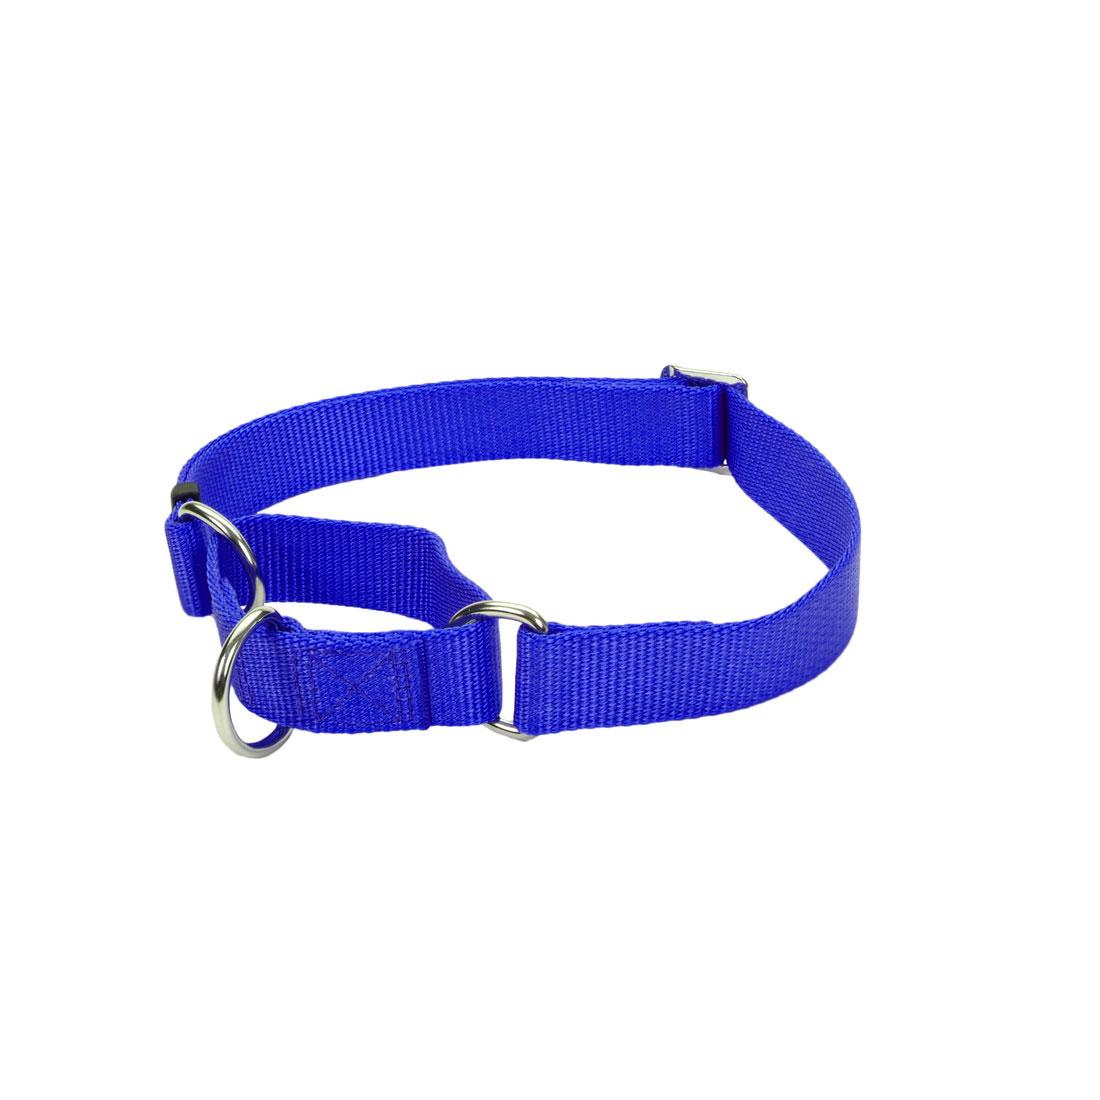 No! Slip Martingale Adjustable Dog Collar, Blue, 5/8-in x 10-14-in